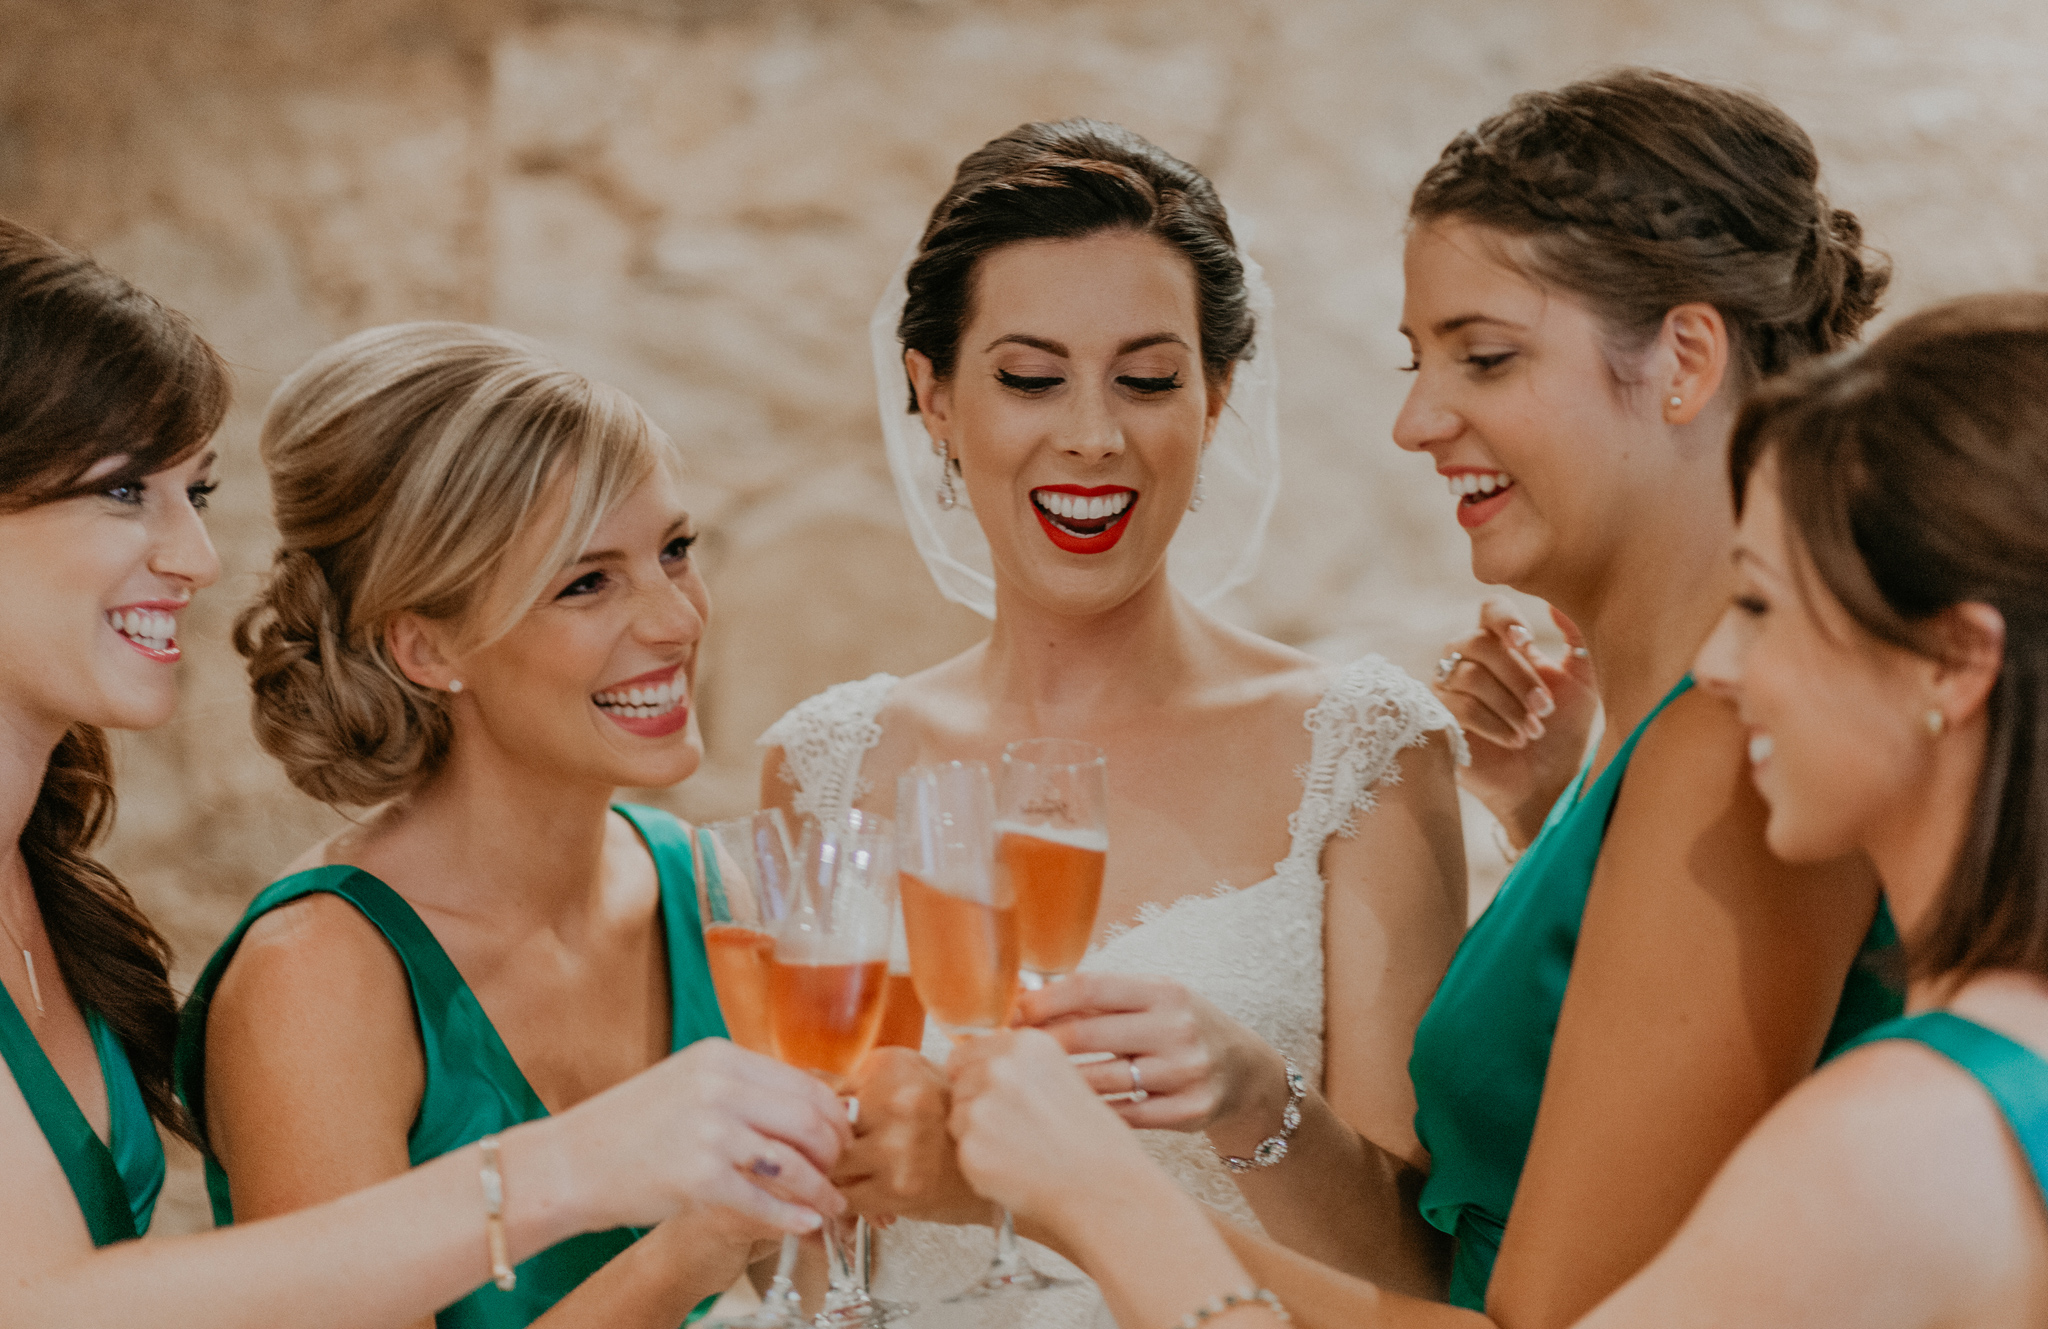 Bride and bridesmaids smile during champagne toast documentary wedding photograph